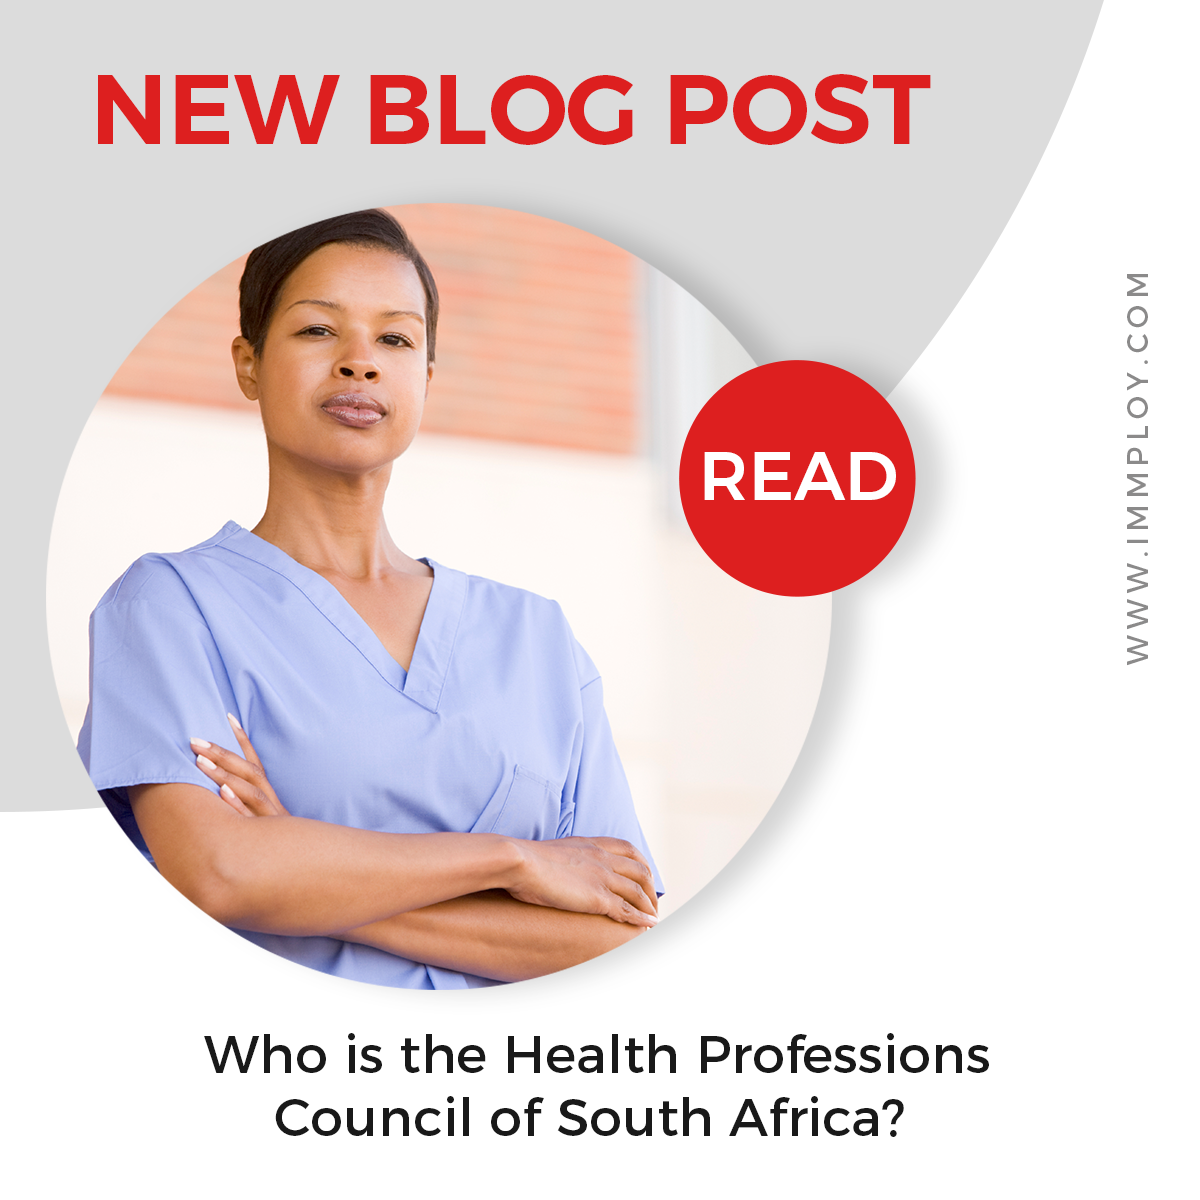 Who is the Health Professions Council of South Africa?